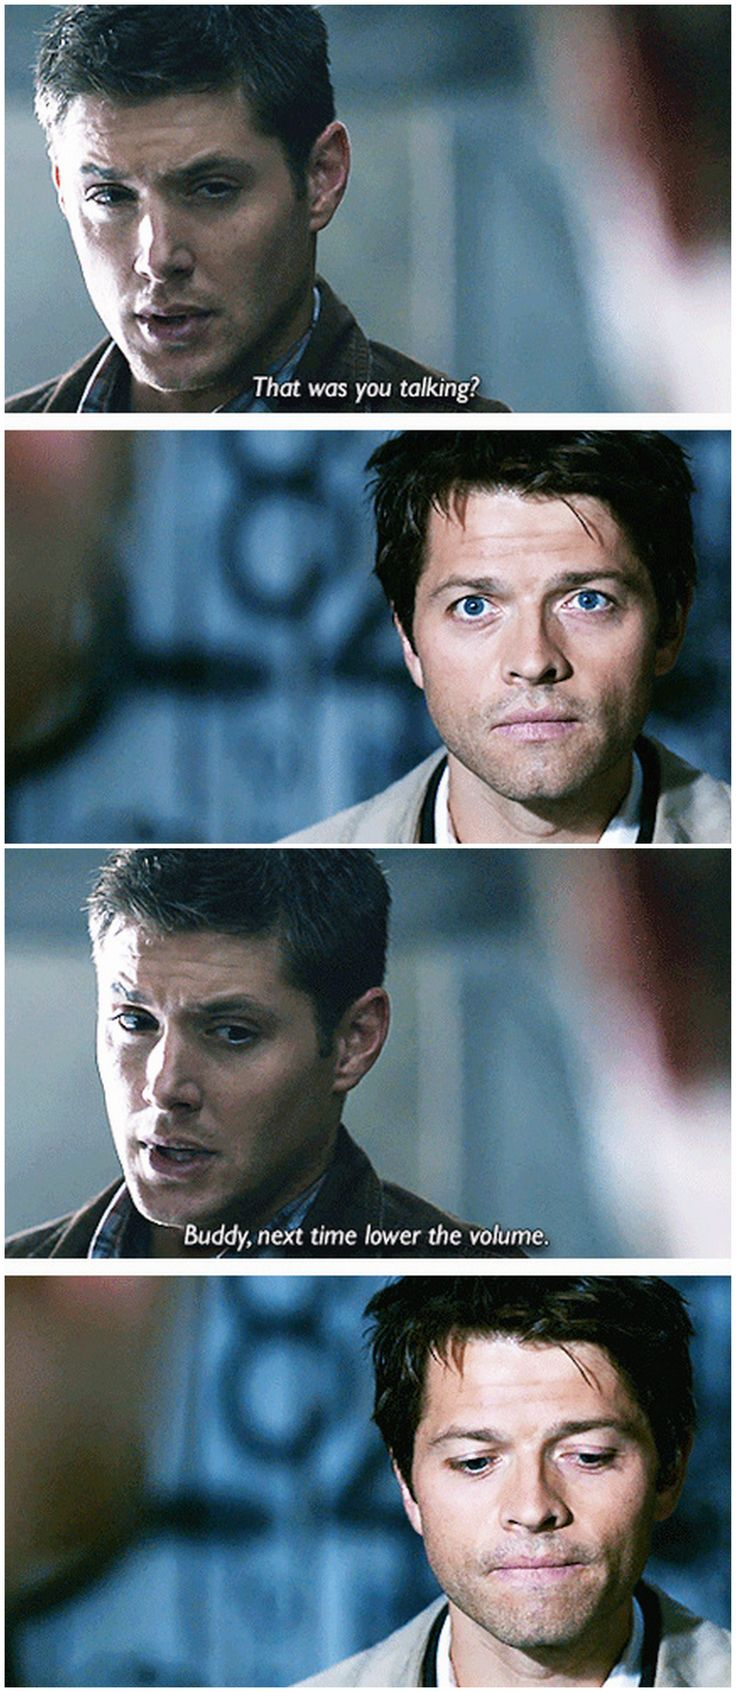 4x01 Lazarus Rising [gifset] -  Buddy, next time lower the volume -  #SPN #Dean #Castiel